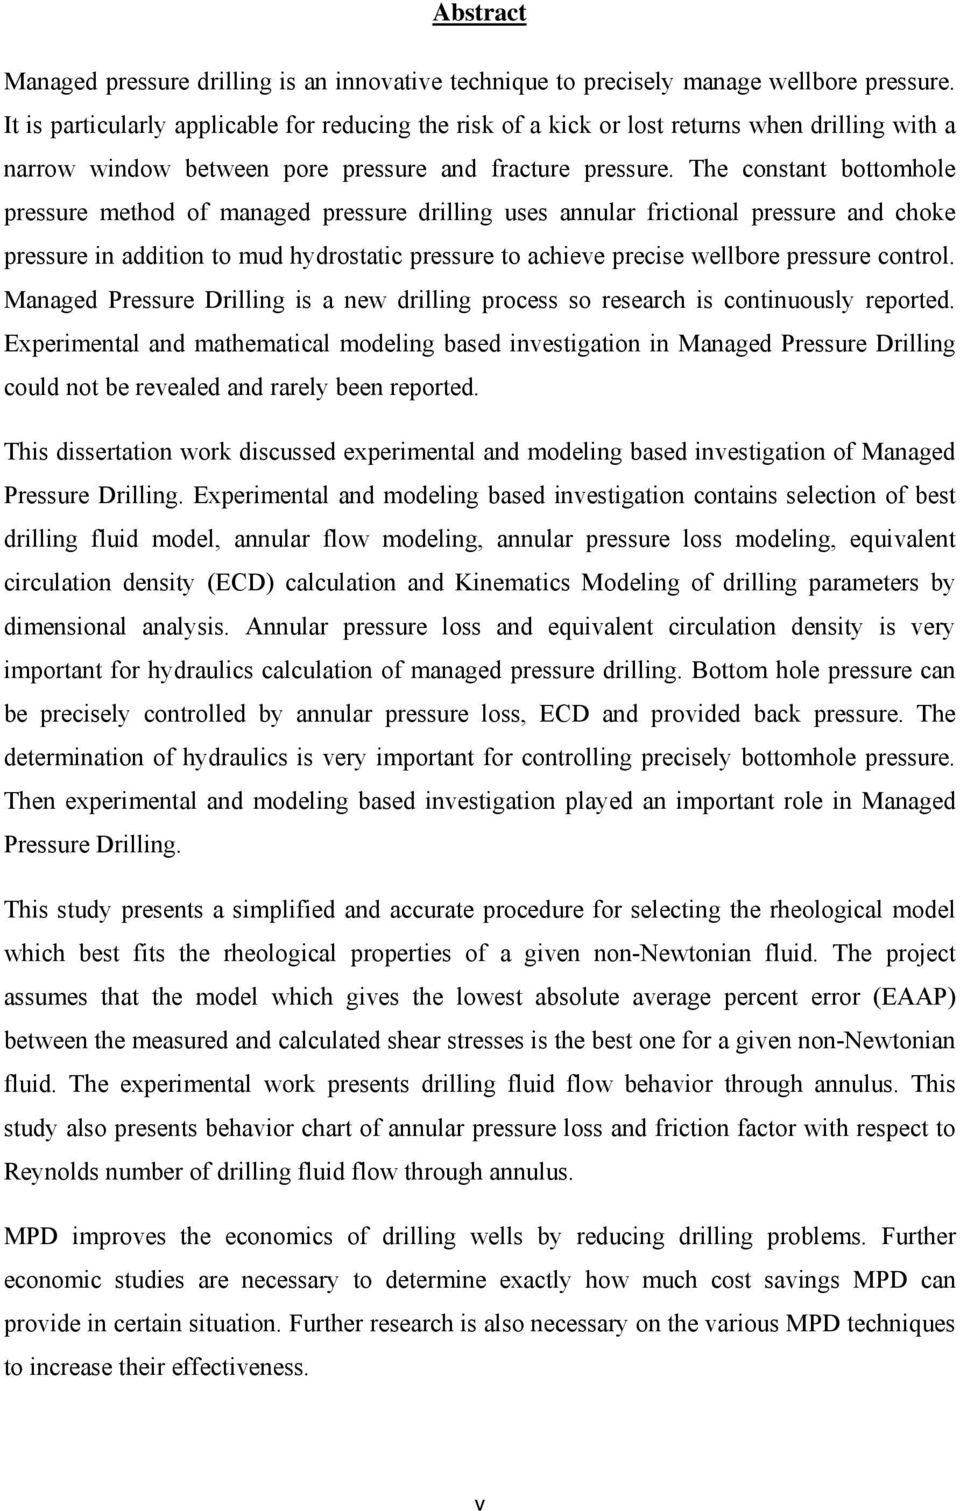 The constant bottomhole pressure method of managed pressure drilling uses annular frictional pressure and choke pressure in addition to mud hydrostatic pressure to achieve precise wellbore pressure